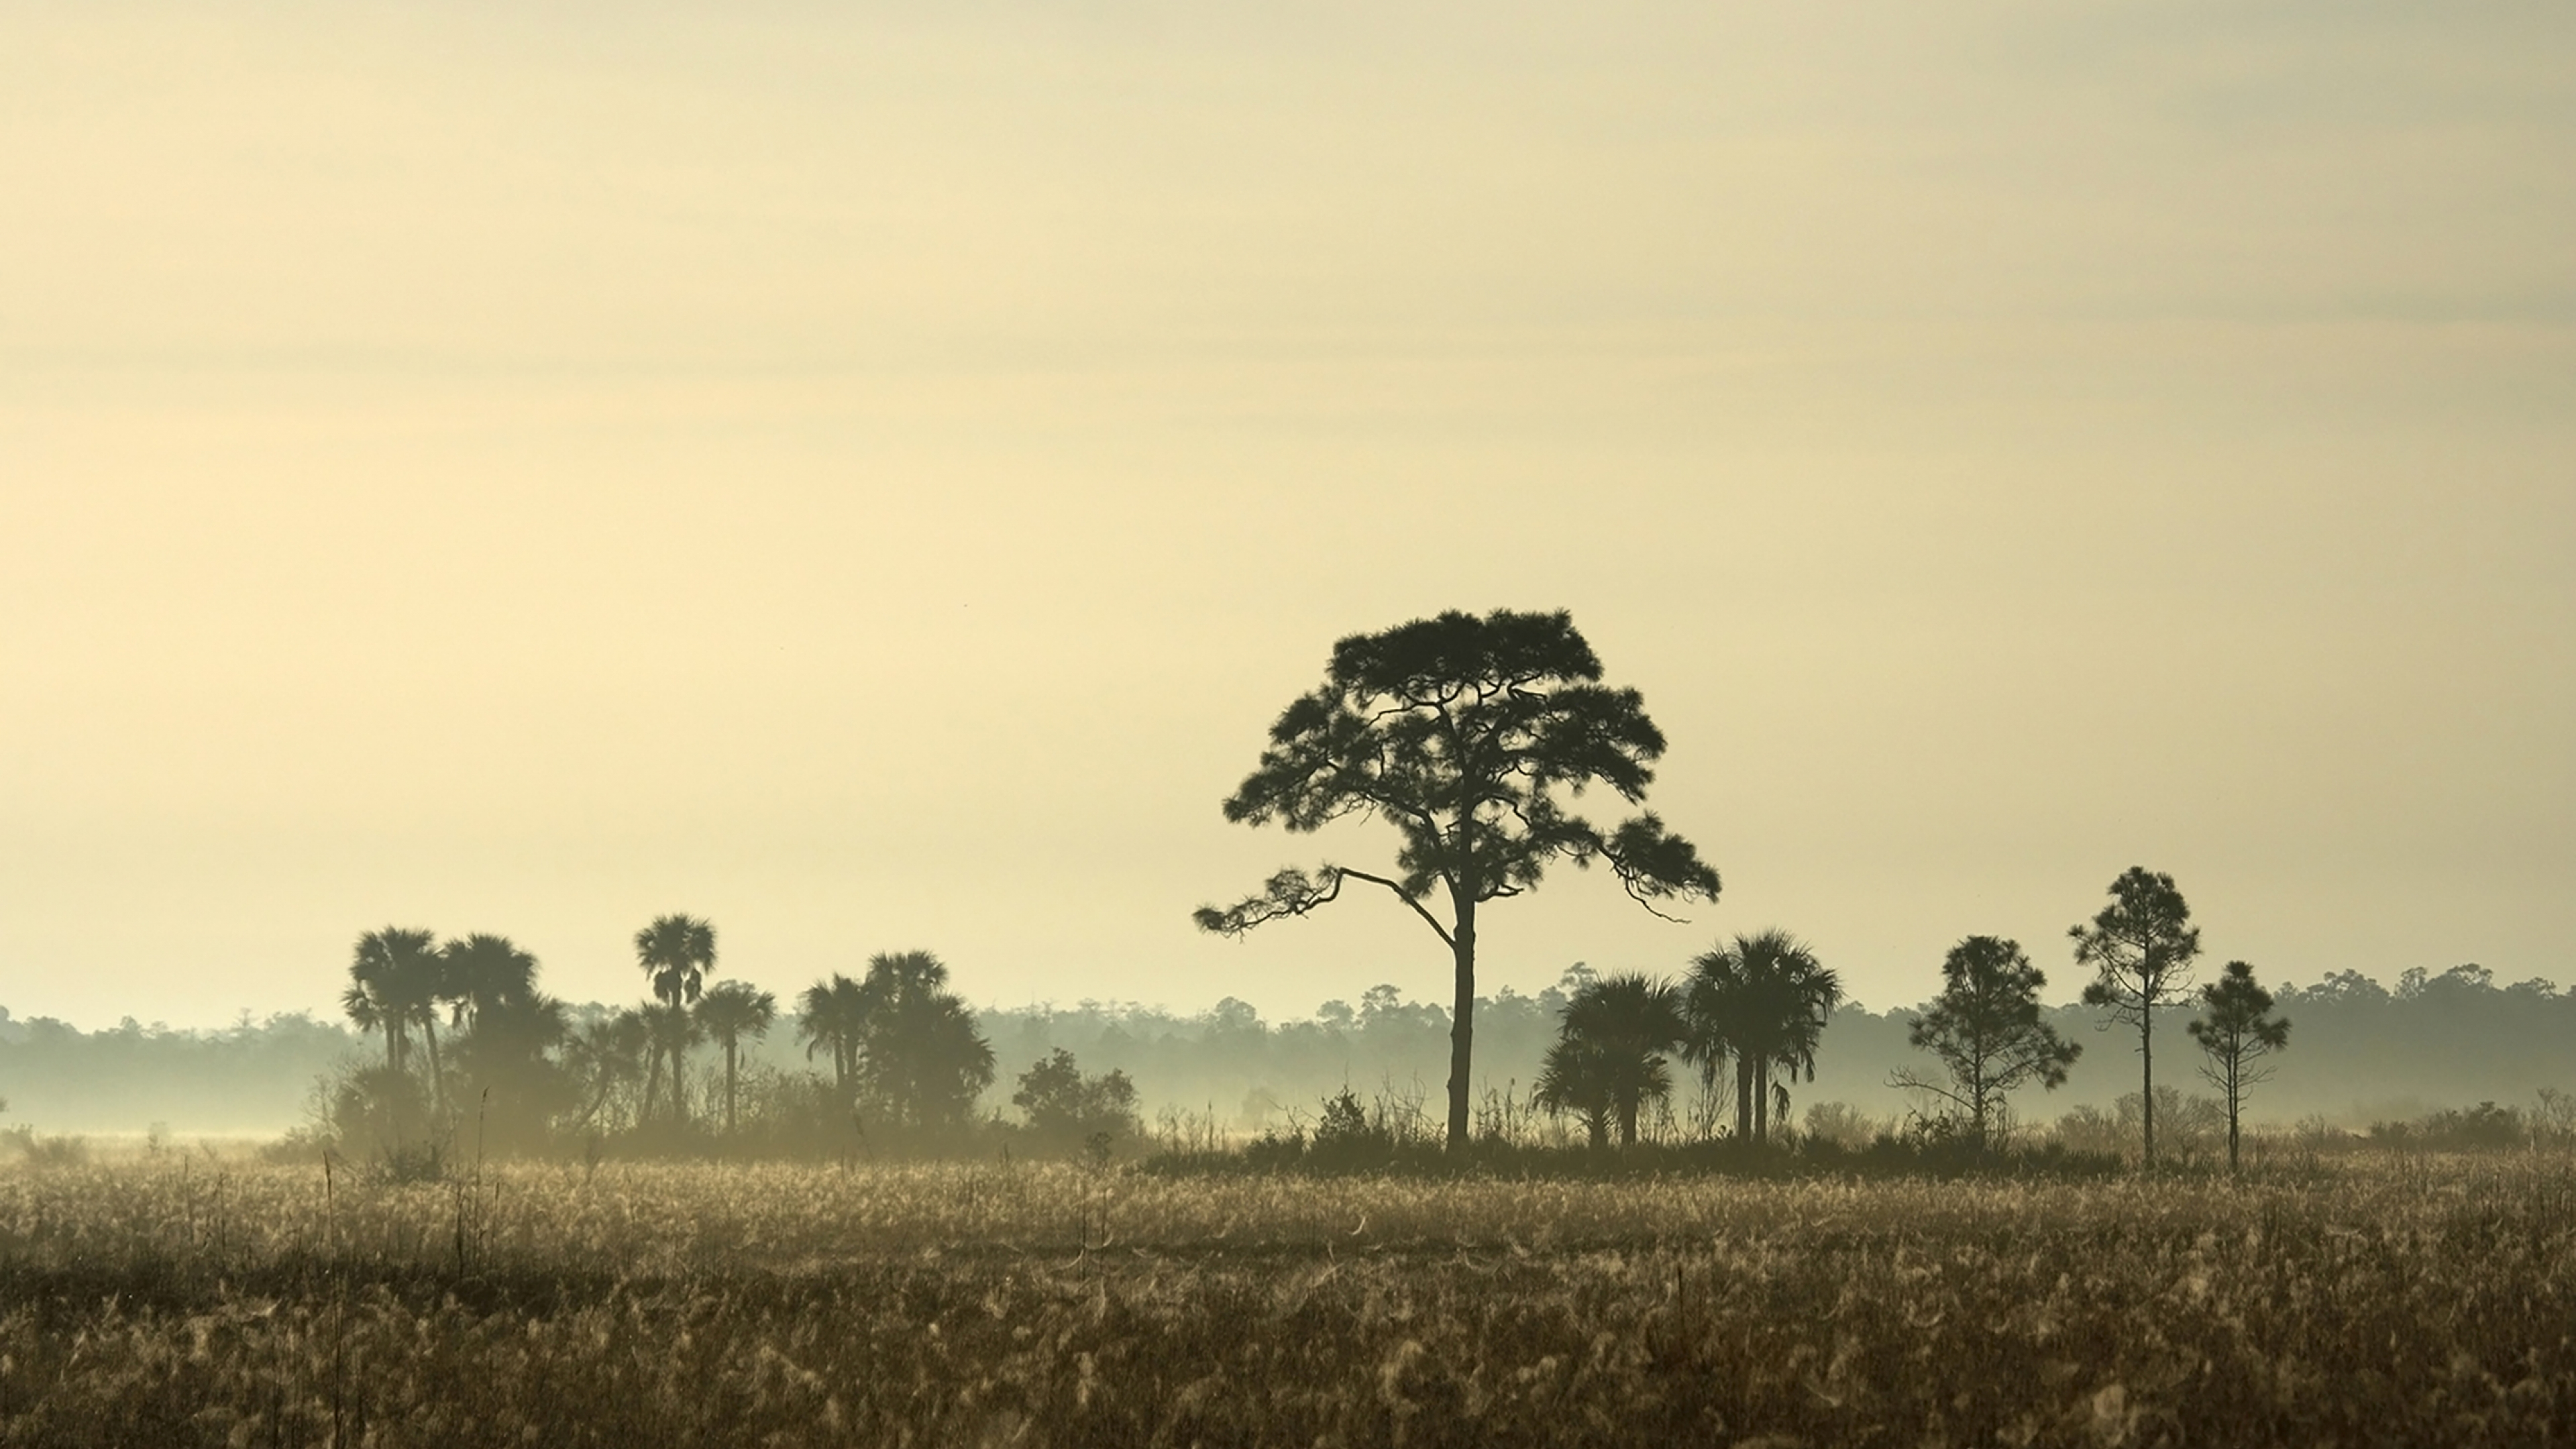 An early morning view of the trees from afar